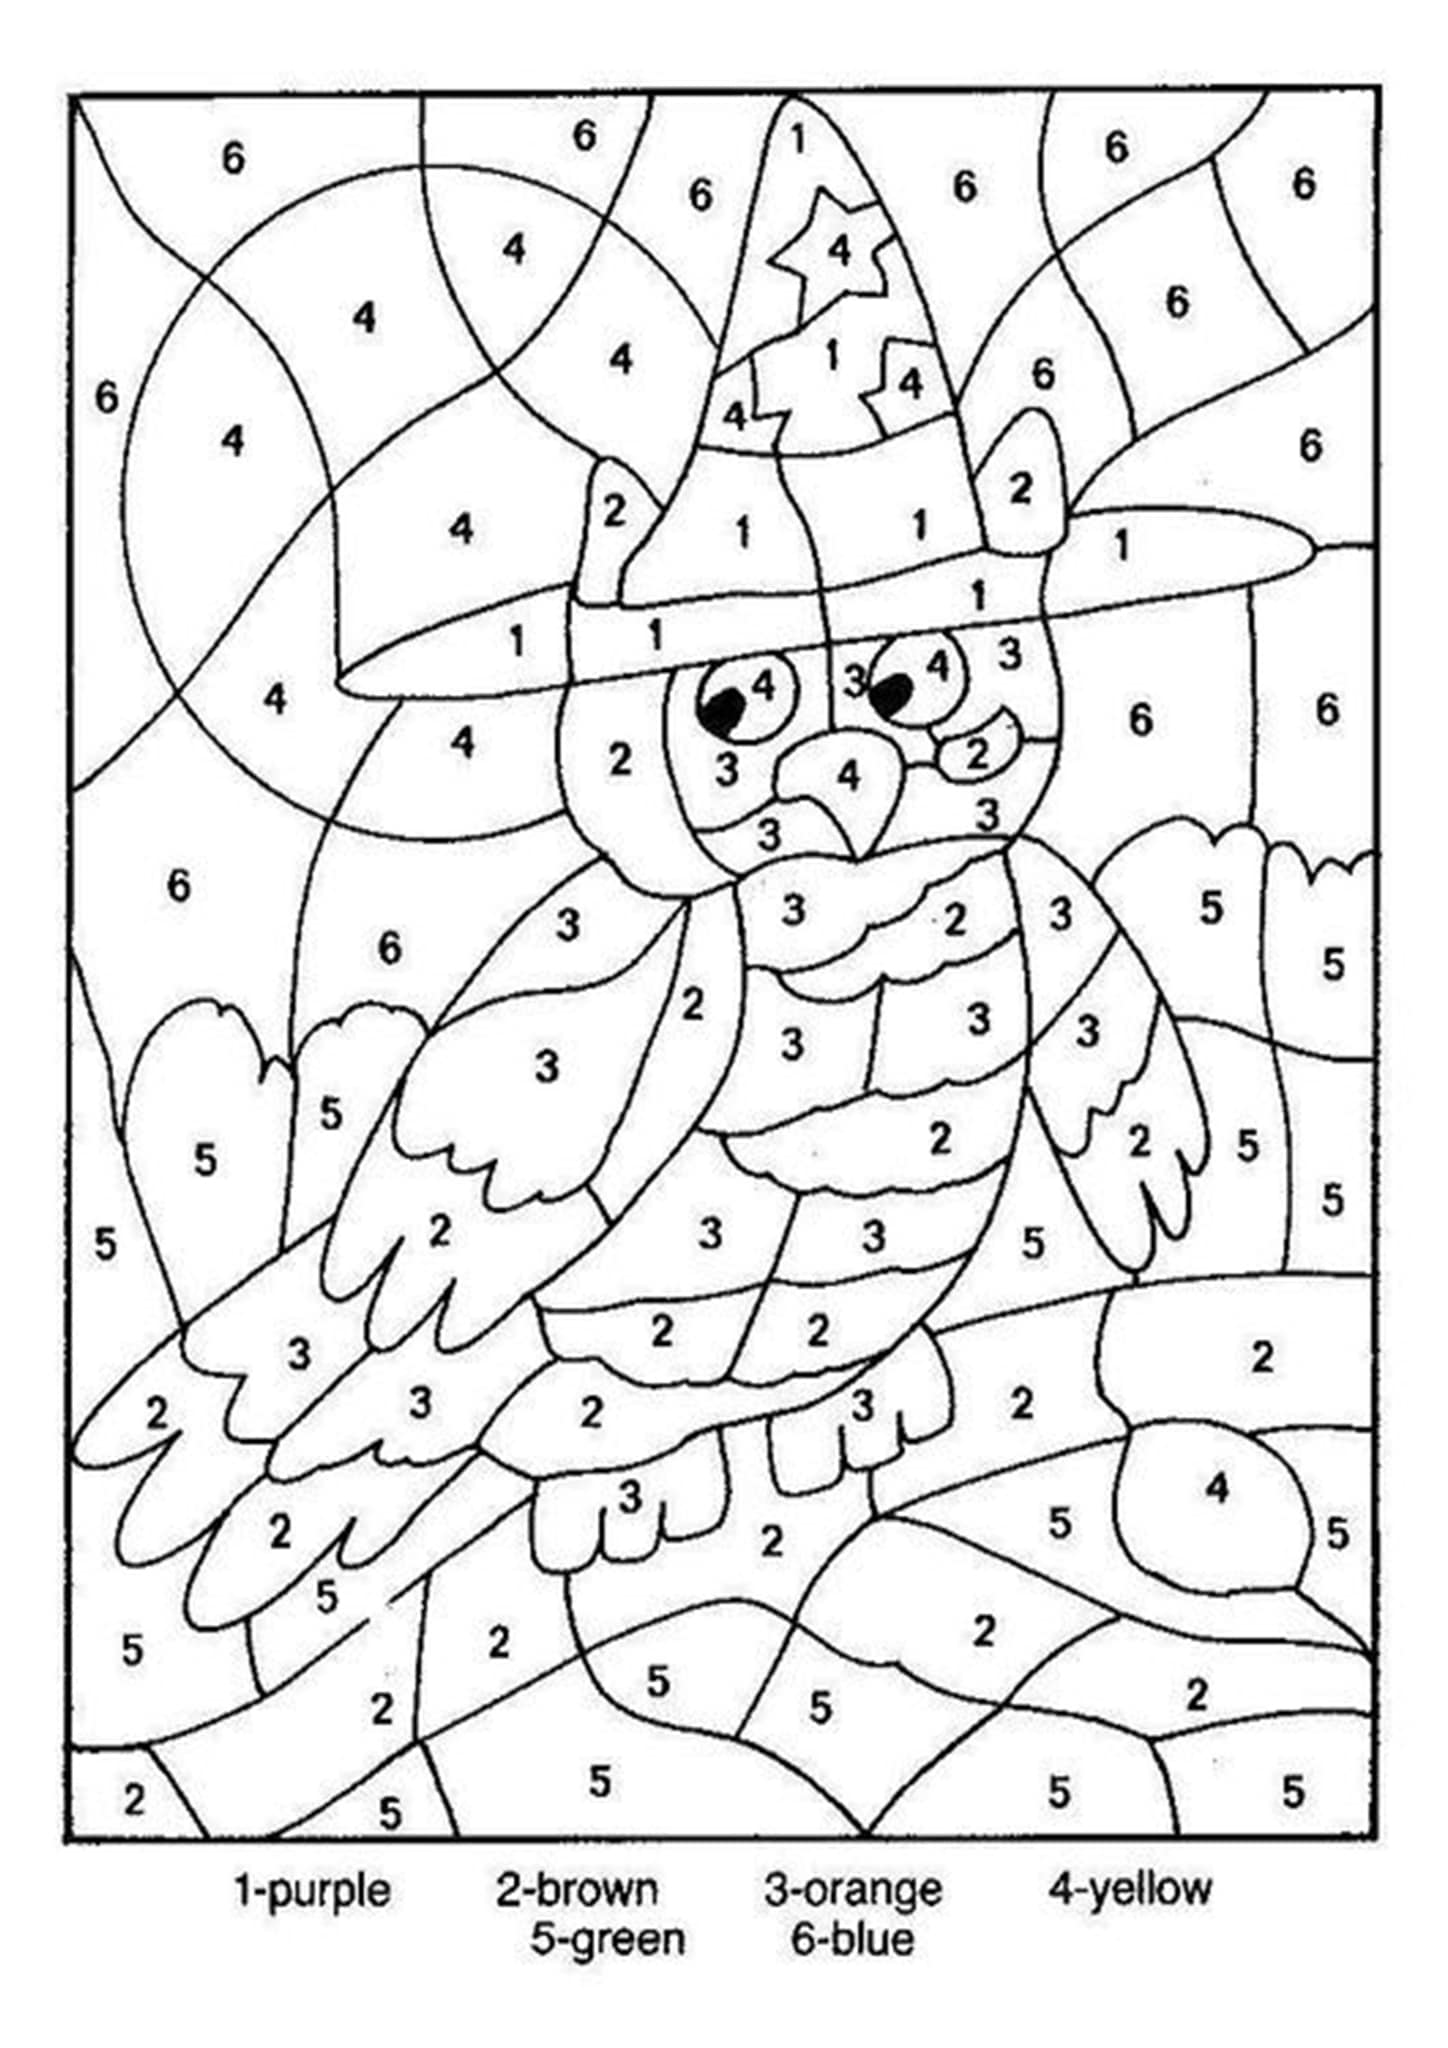 coloring by number free printable color by number worksheets for kindergarten number by coloring